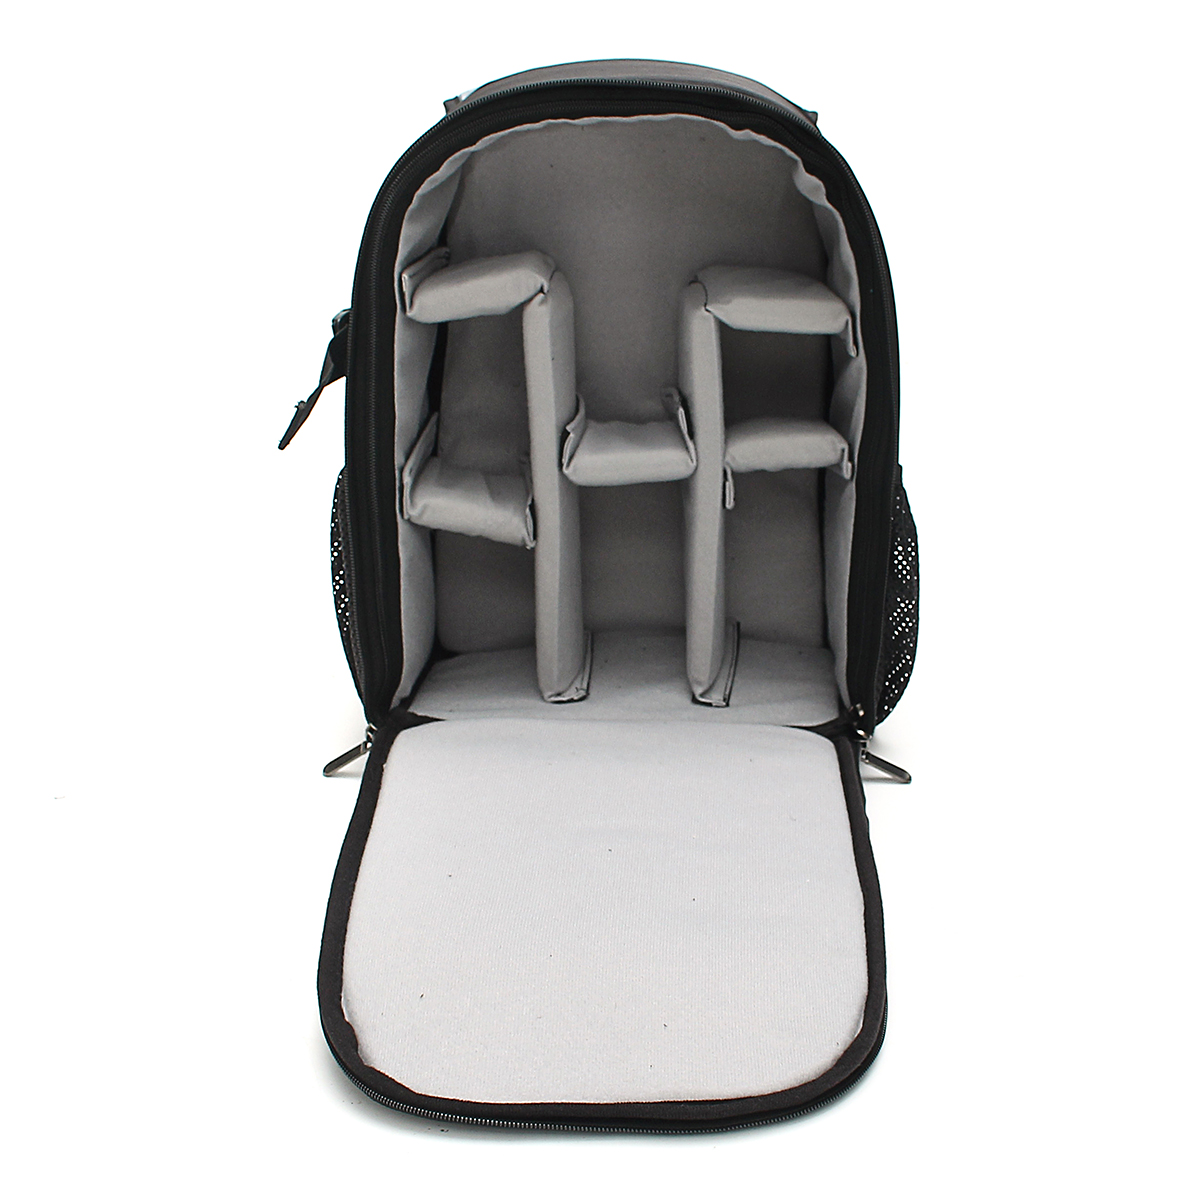 Waterproof Backpack Camera Bag with Padded Bag for DSLR Camera Lens Accessories 20